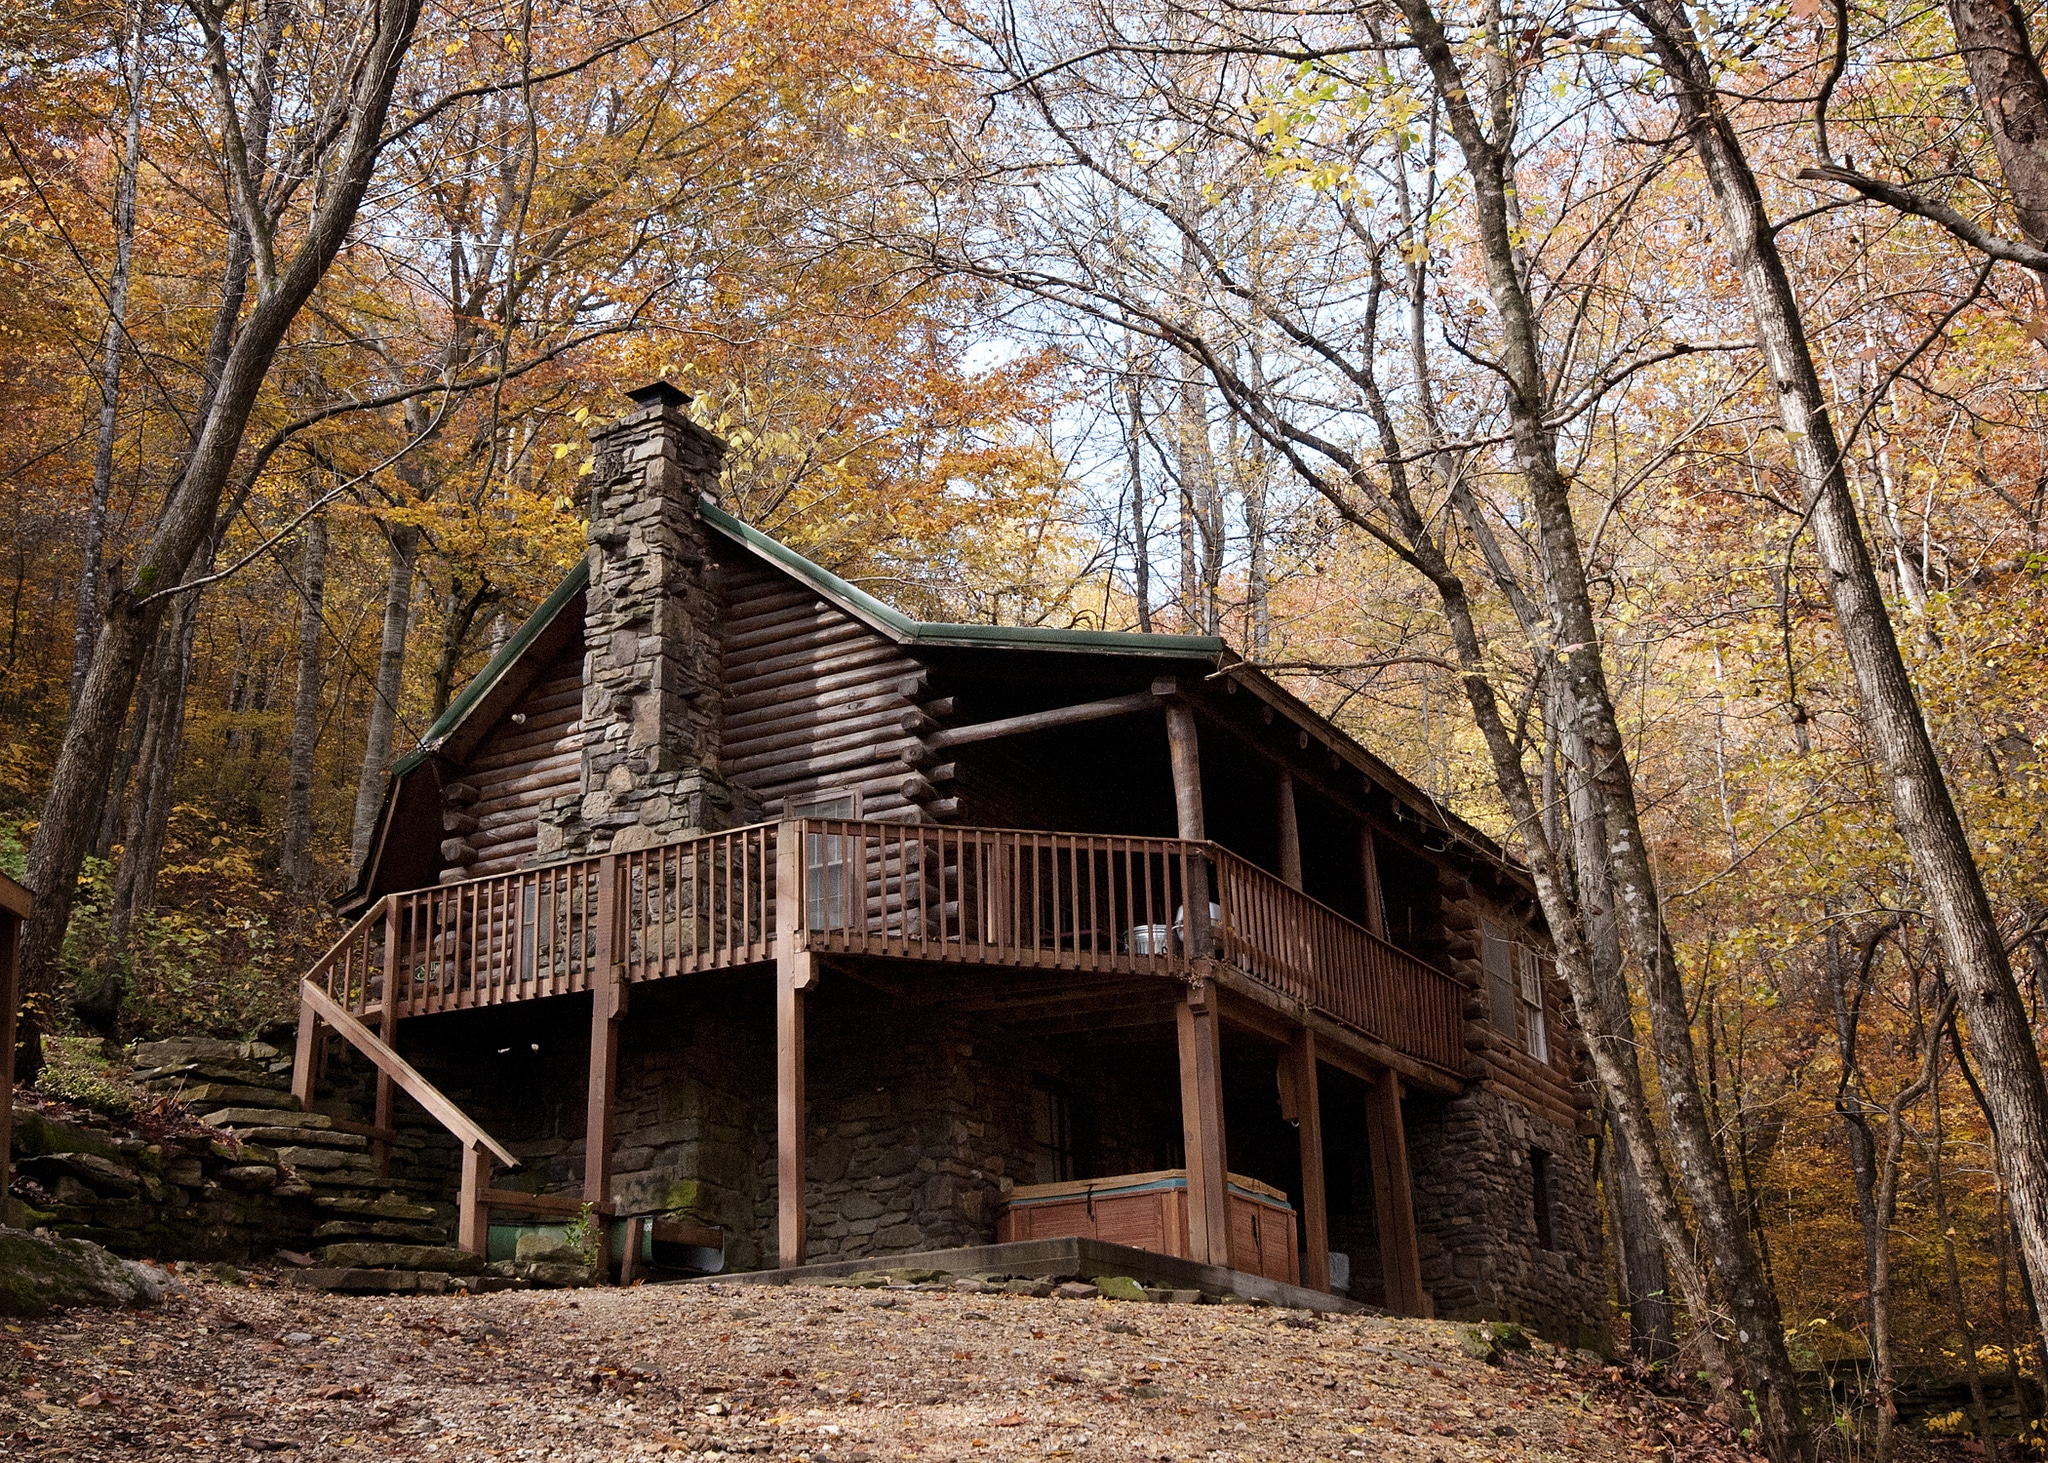 Private wooden cabin for rent in the Ozarks & Buffalo River Country